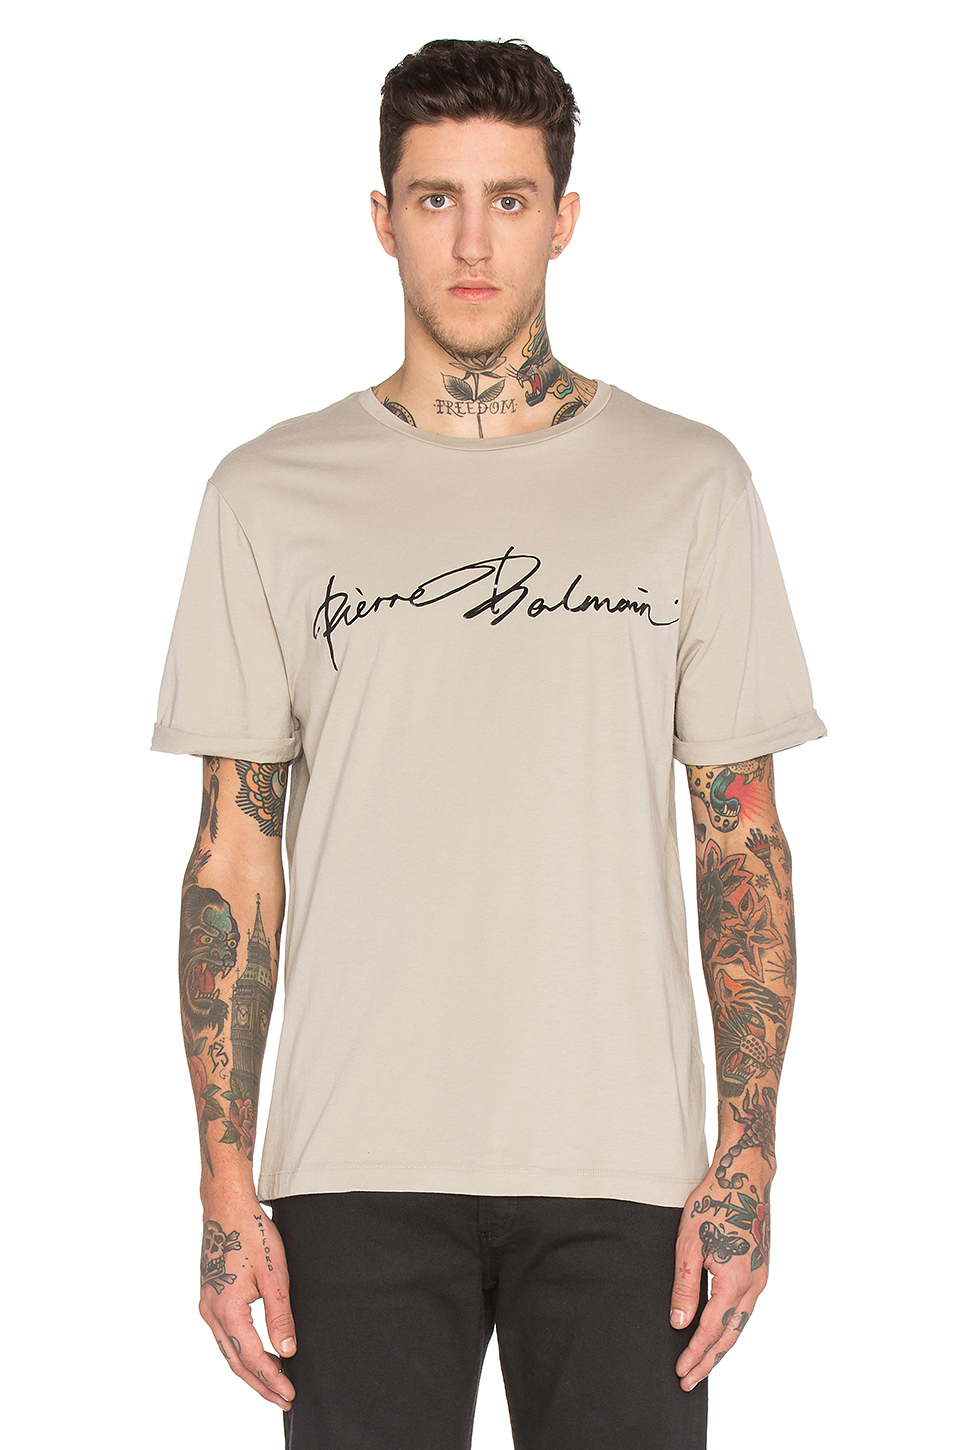 balmain t shirt in natural for men lyst. Black Bedroom Furniture Sets. Home Design Ideas